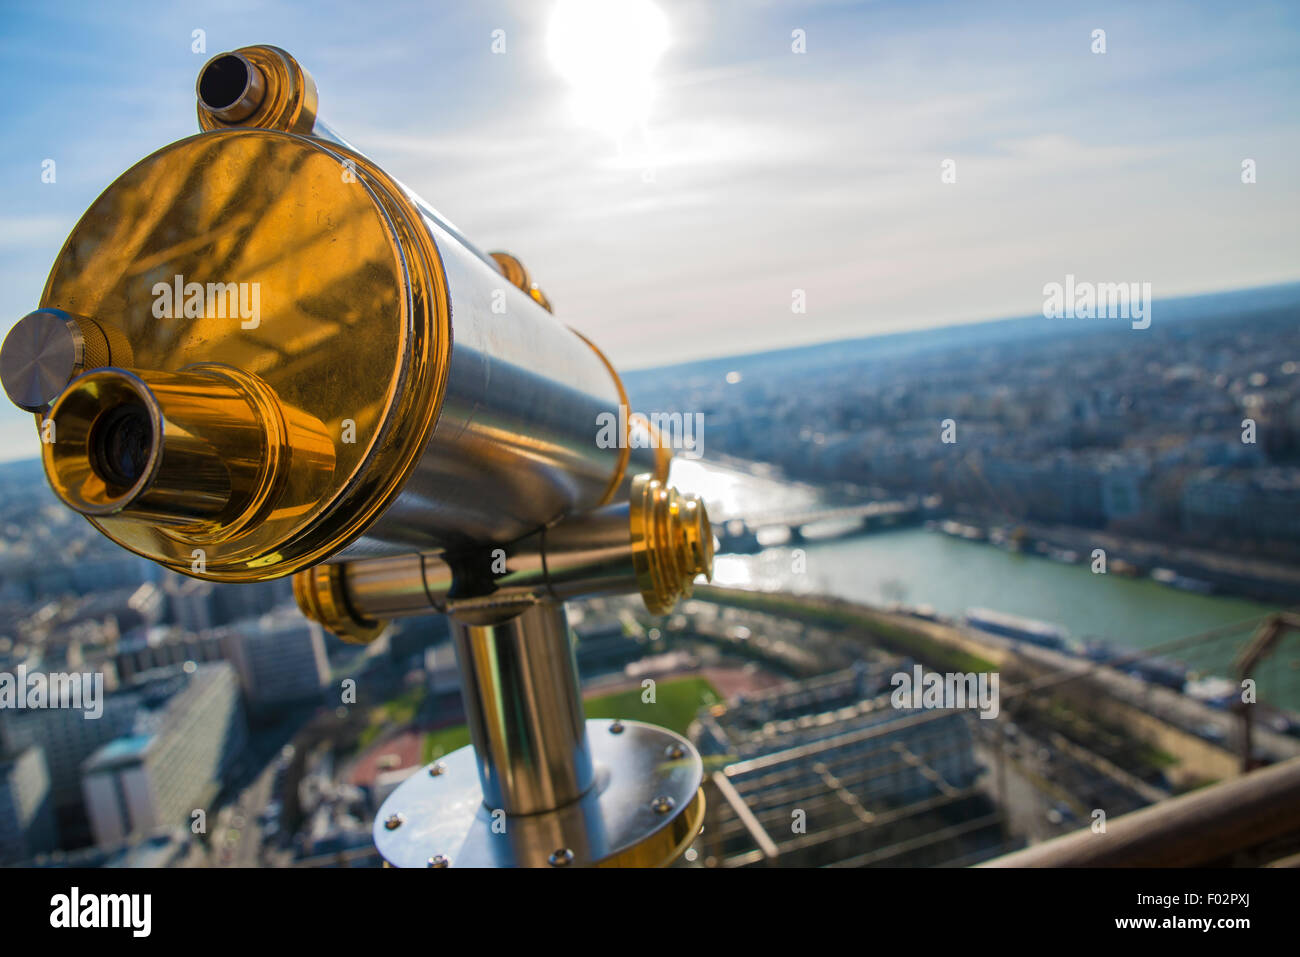 Telescope and view from the top of the Eiffel tower, Paris - Stock Image